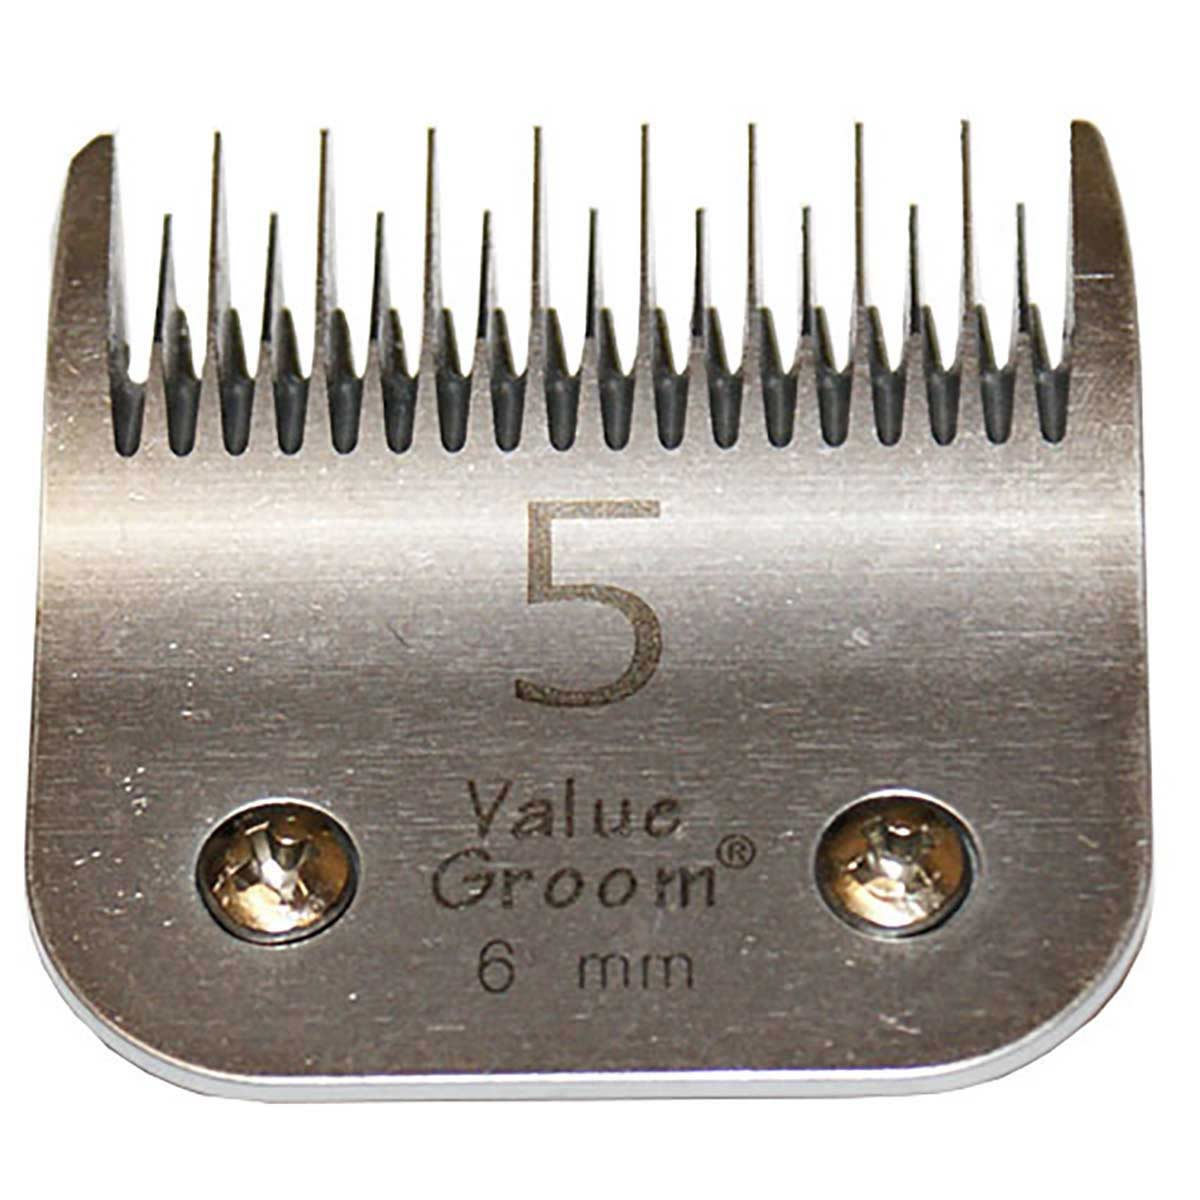 "Value Groom #5 Conventional Blade Skip Tooth 1/4"" 6 mm"